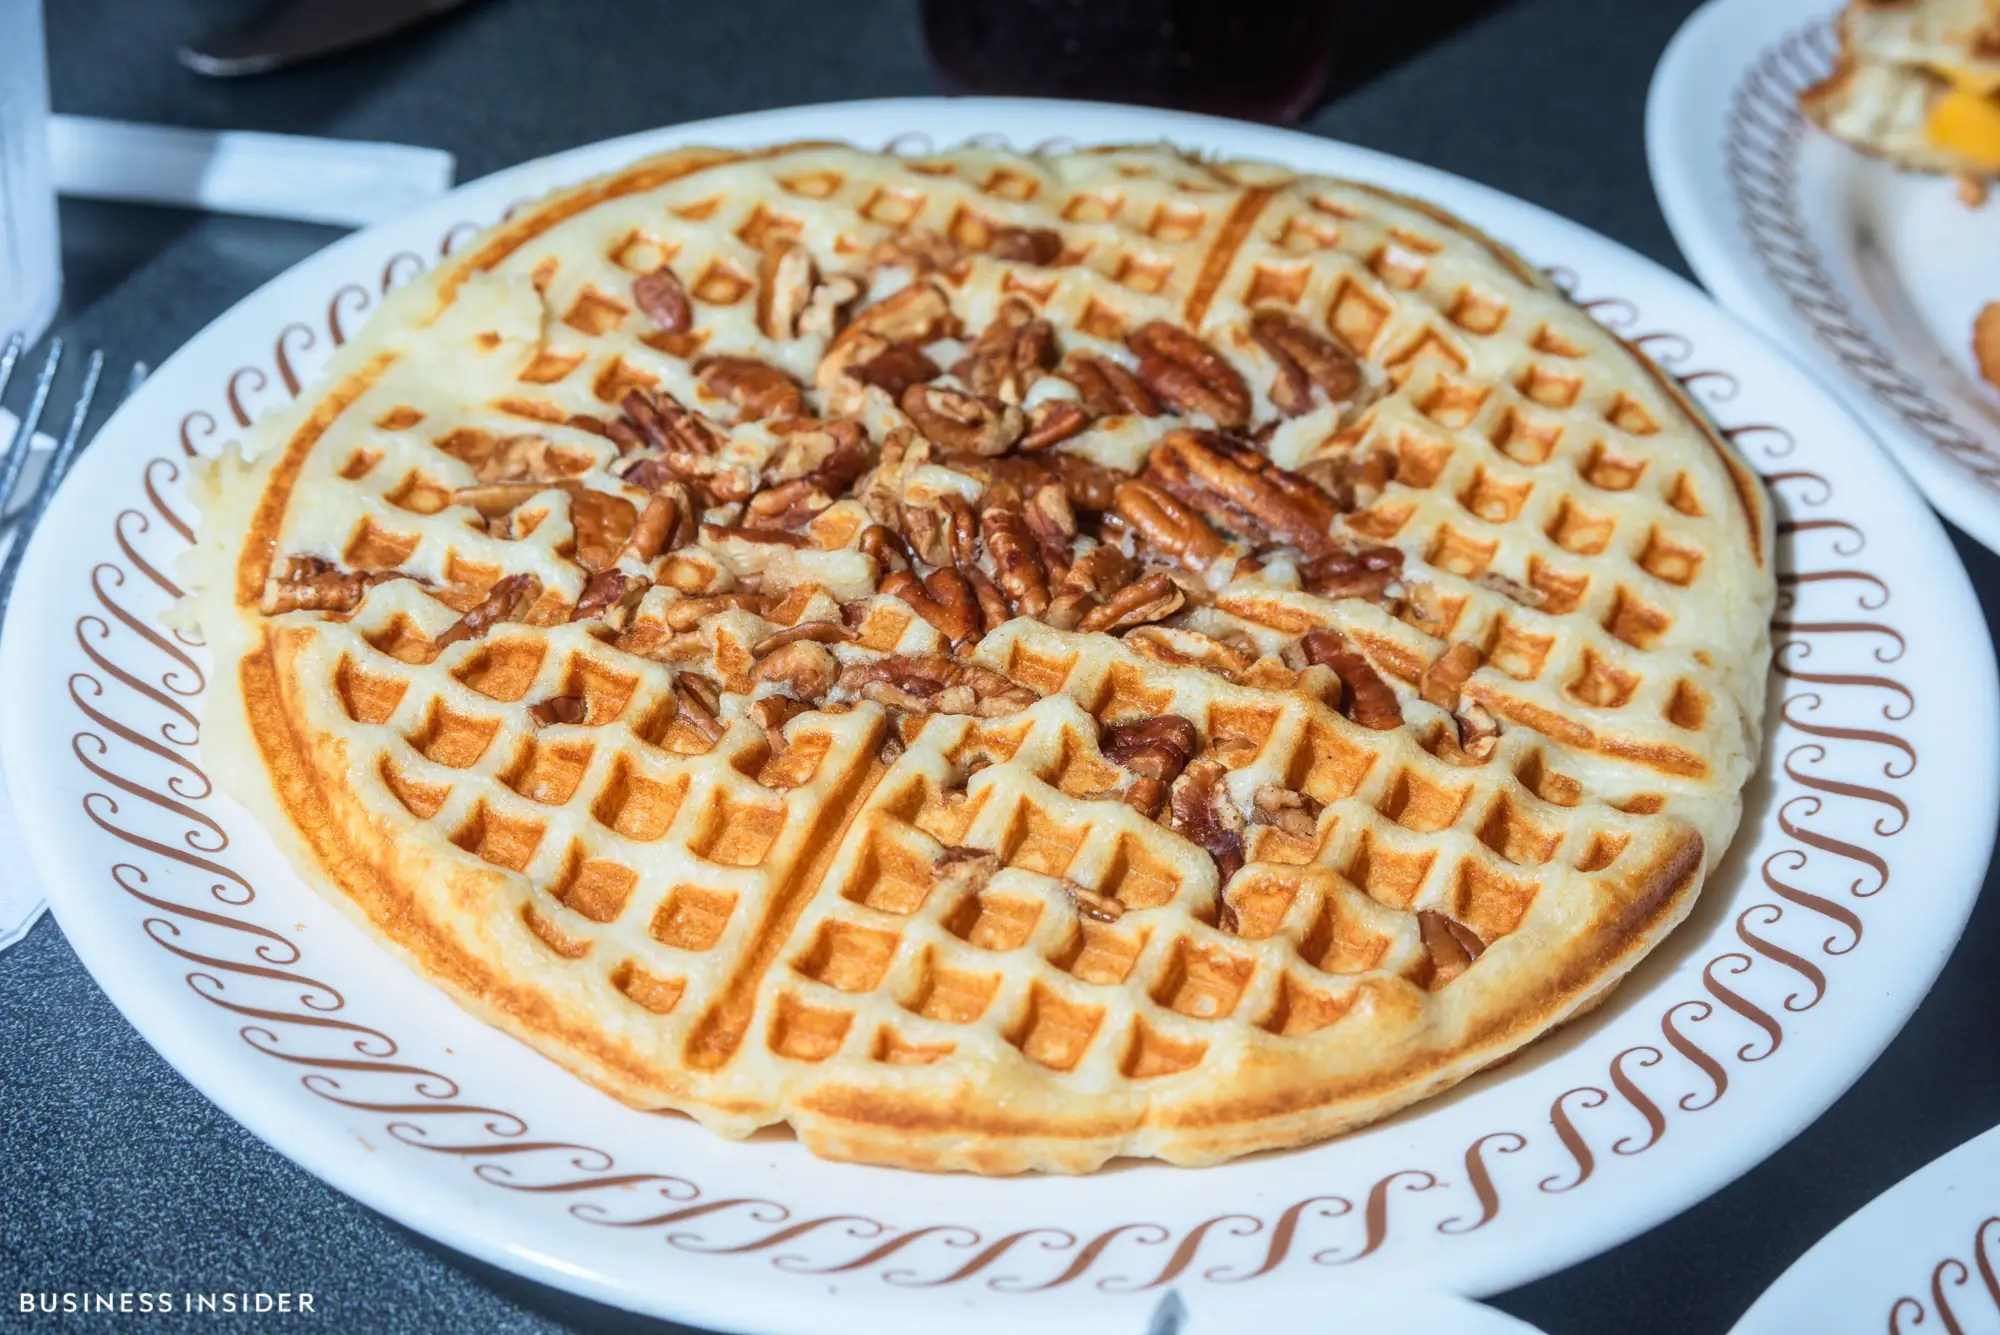 It should come as no surprise that Waffle House can serve up a mean waffle. Make no mistake, this is no Belgian waffle — it's a staunchly American take. It's soft and fluffy, but not too thick, close to a pancake in texture but still maintaining the crucial grid of the syrup-collection system.